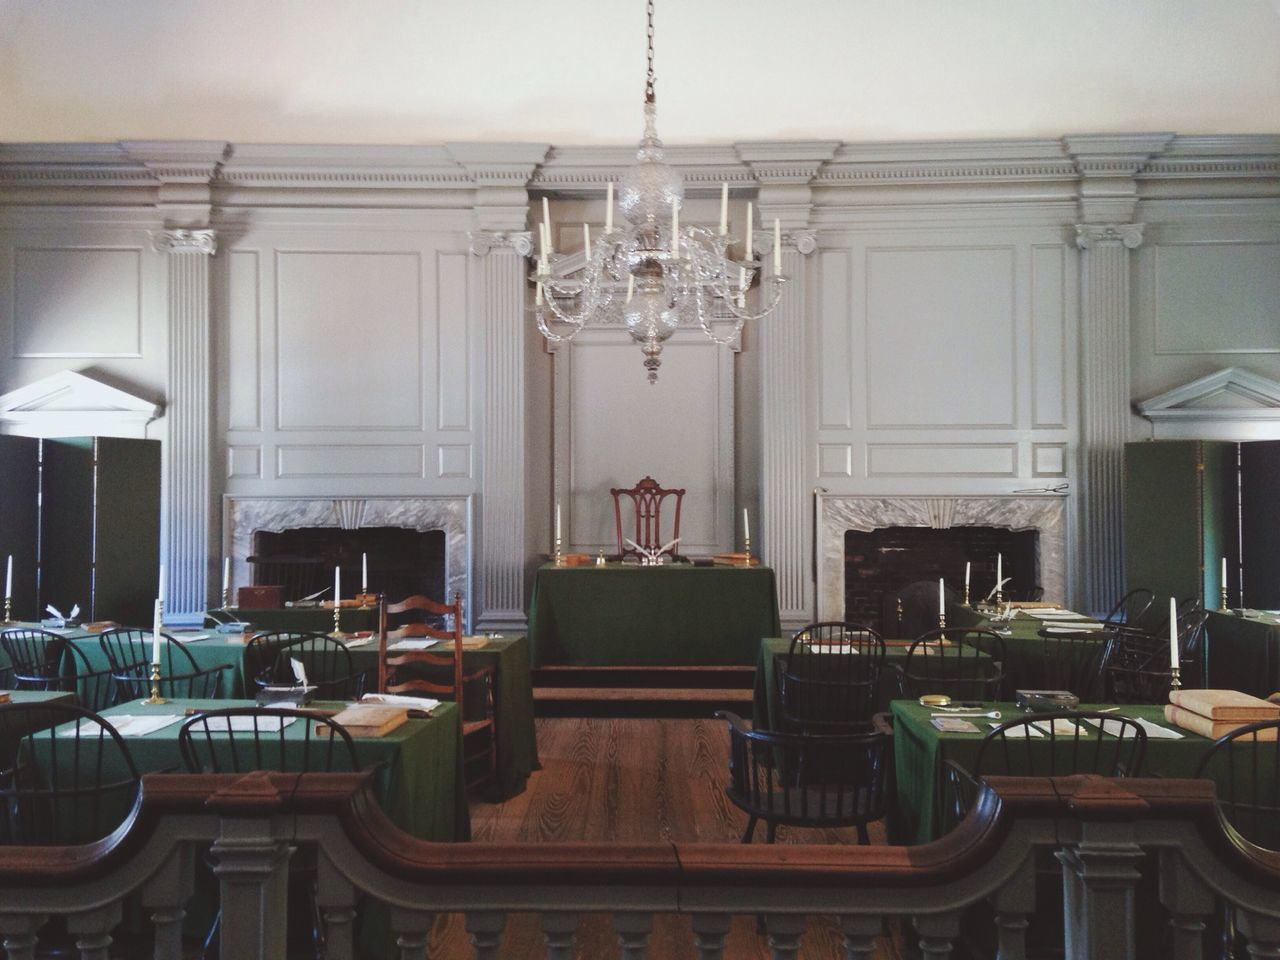 Where some dudes did some important stuff back in the 1700s. Party In The Usa Xoxophilly